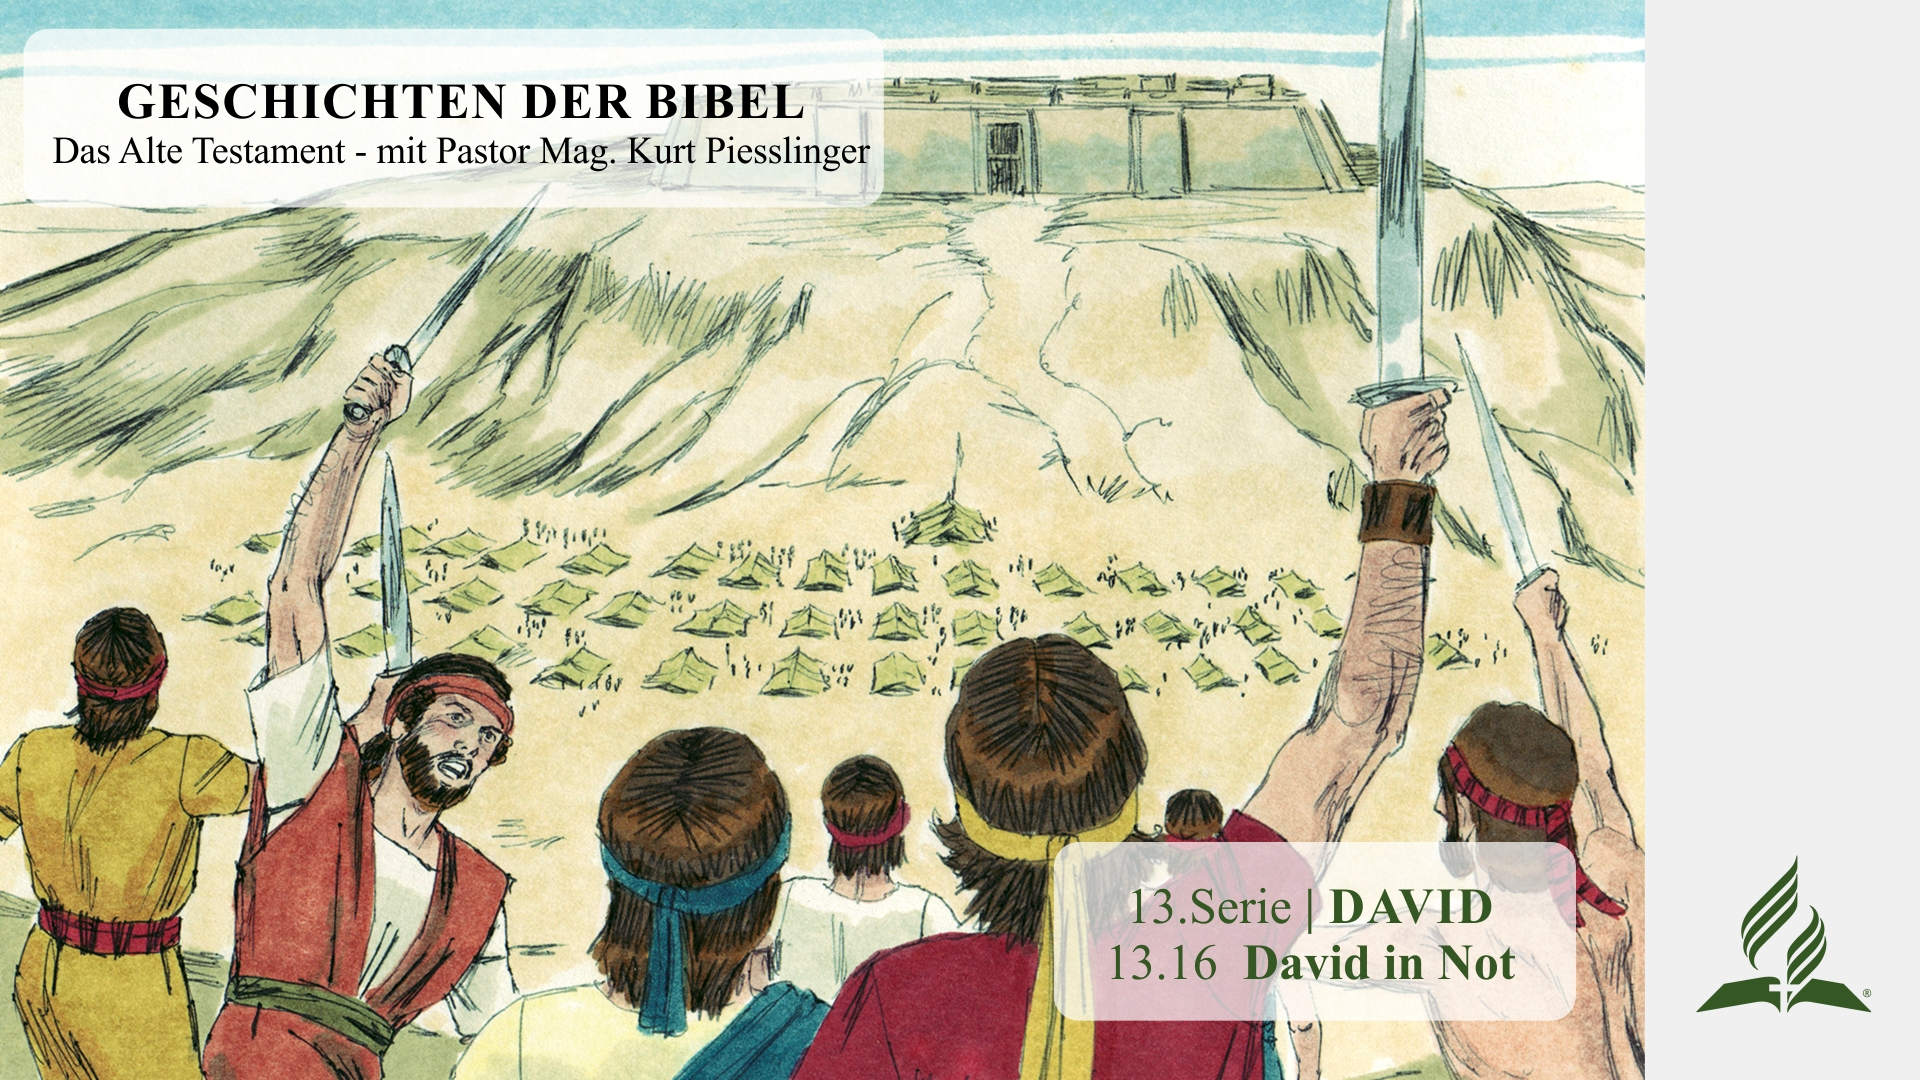 GESCHICHTEN DER BIBEL: 13.16 David in Not – 13.DAVID | Pastor Mag. Kurt Piesslinger